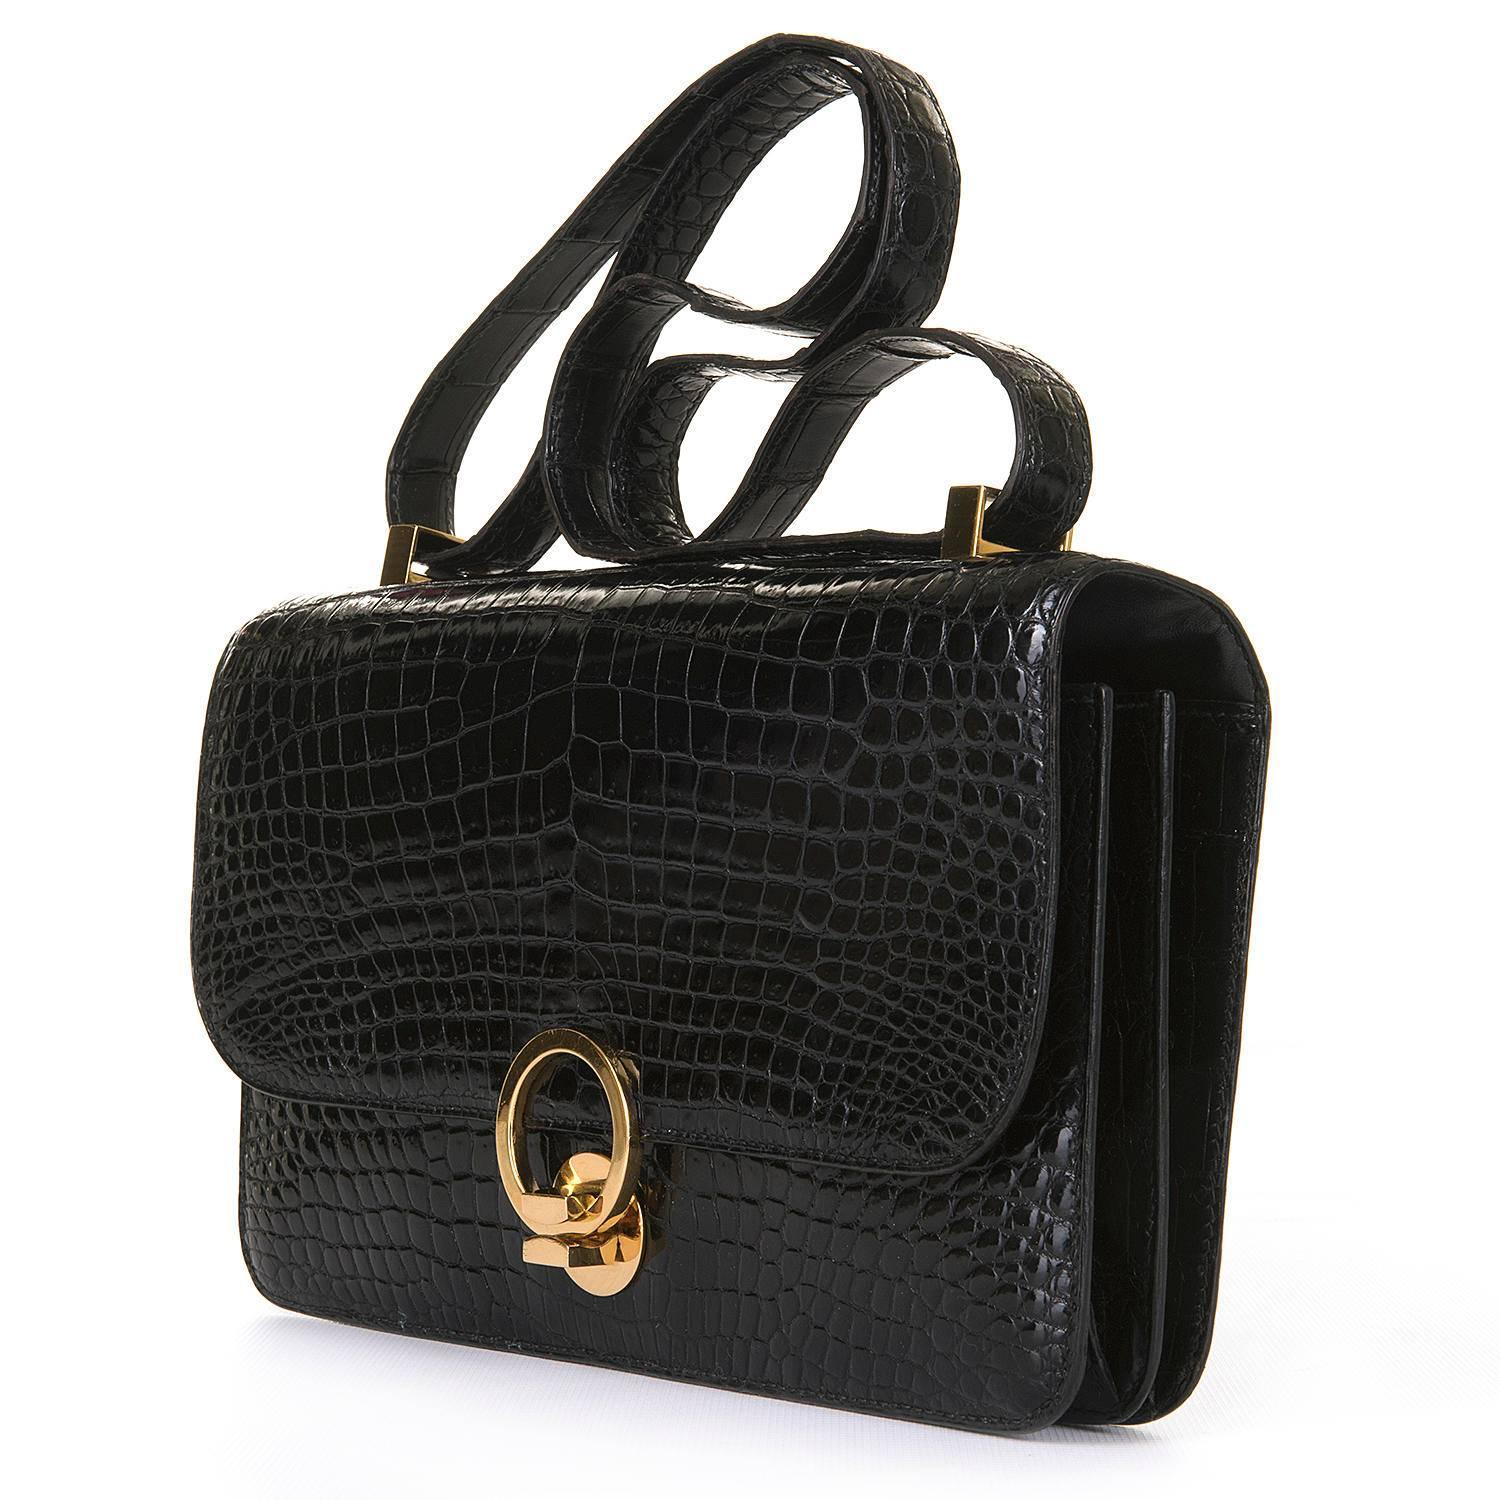 pristine vintage hermes 39 sac ring 39 black porosus crocodile shoulder bag at 1stdibs. Black Bedroom Furniture Sets. Home Design Ideas